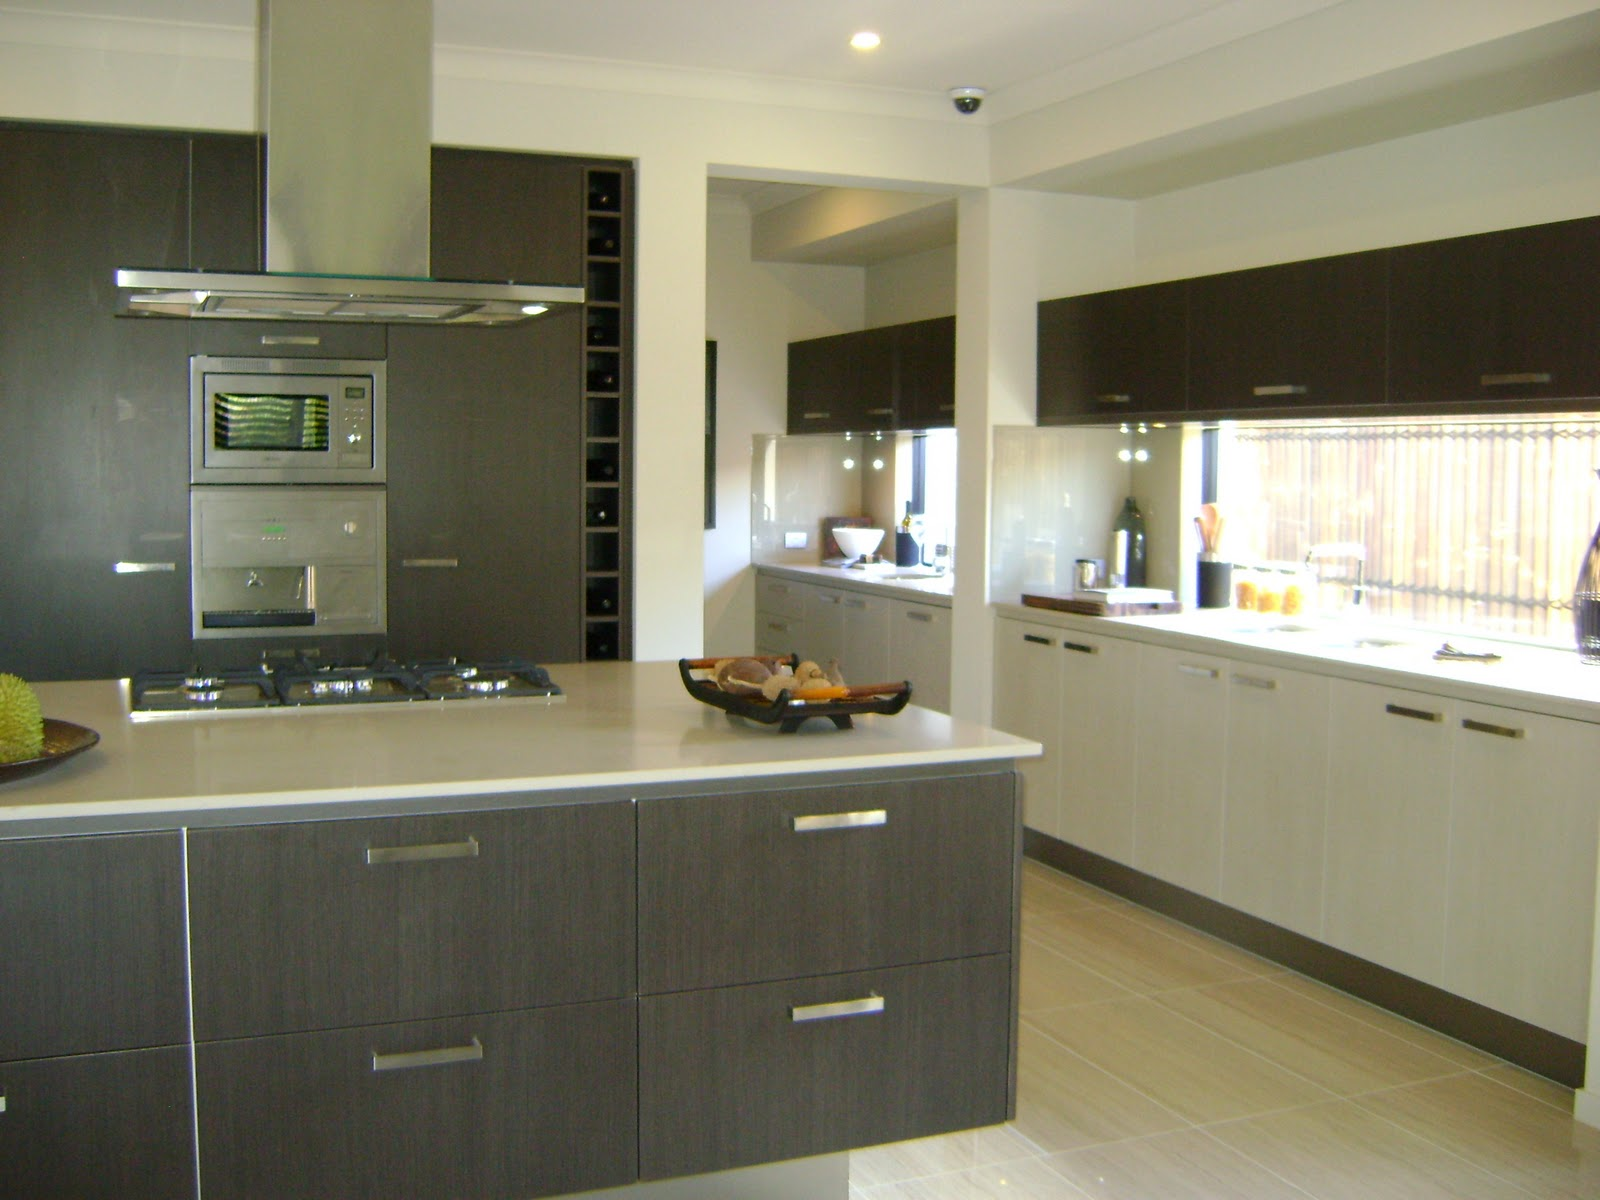 Our metricon nolan 41 journey kitchen and vanity cabinetry - Kitchen And Butler S Pantry